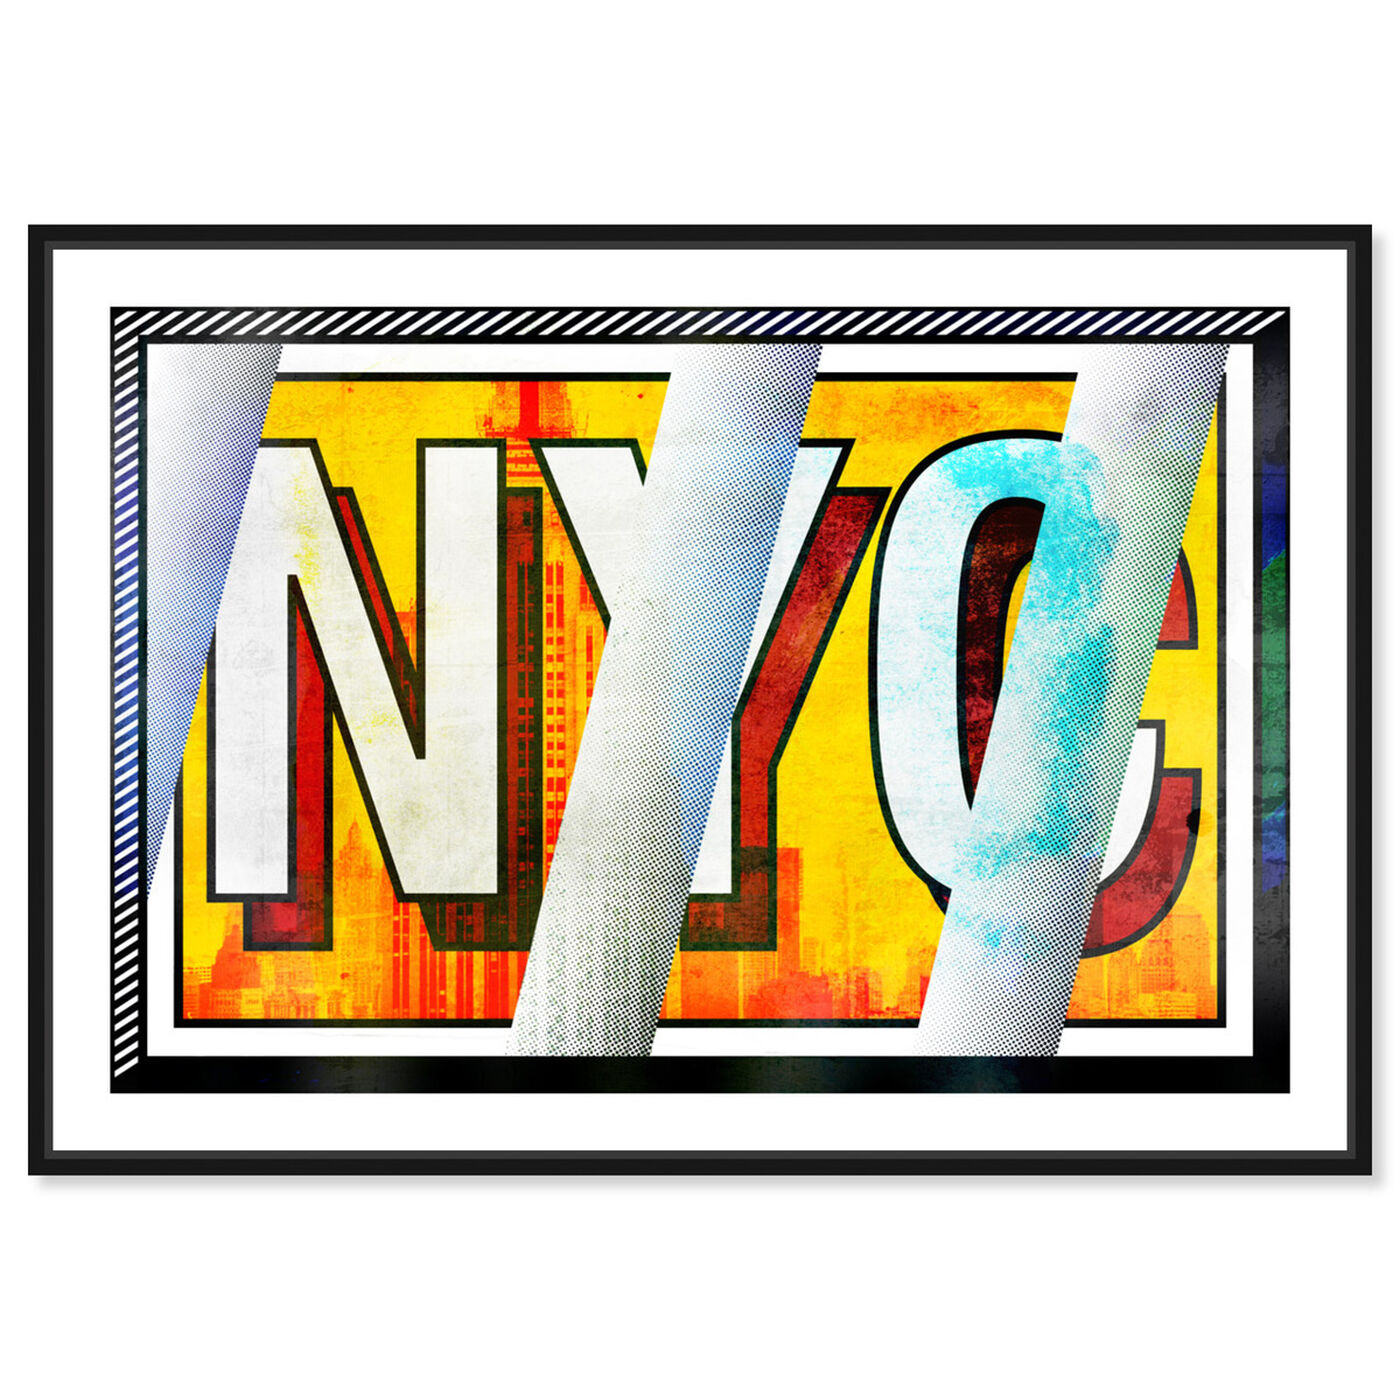 Front view of N-Y-C featuring advertising and comics art.